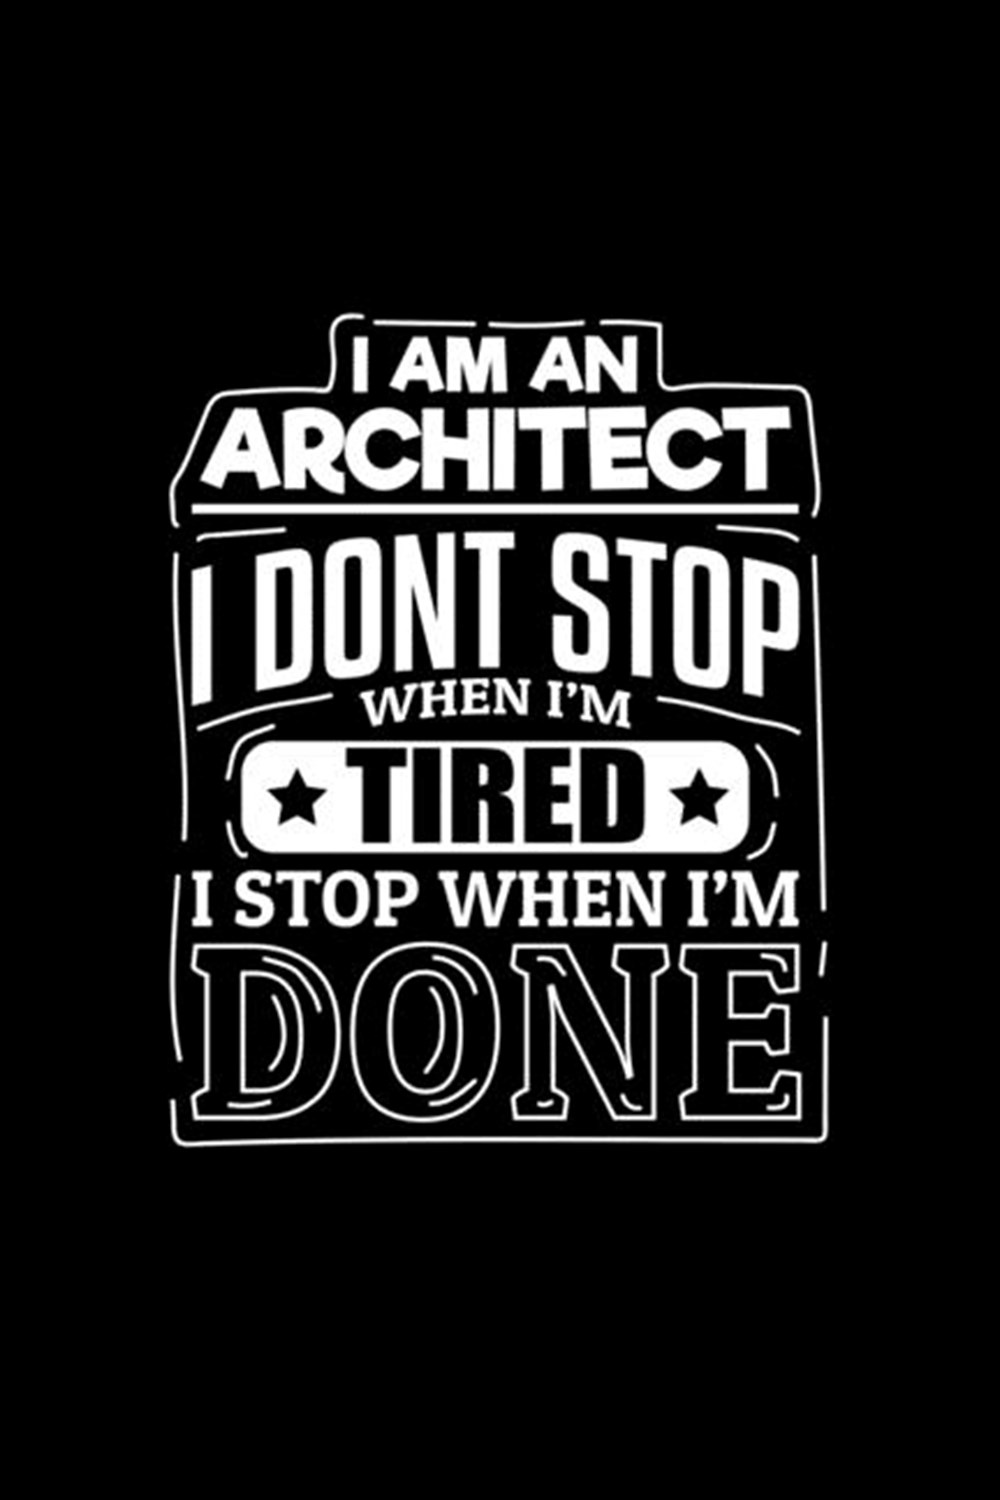 I Am An Architect I Dont Stop When I'm Tired I Stop When I'm Done Blank 5x5 grid squared engineering